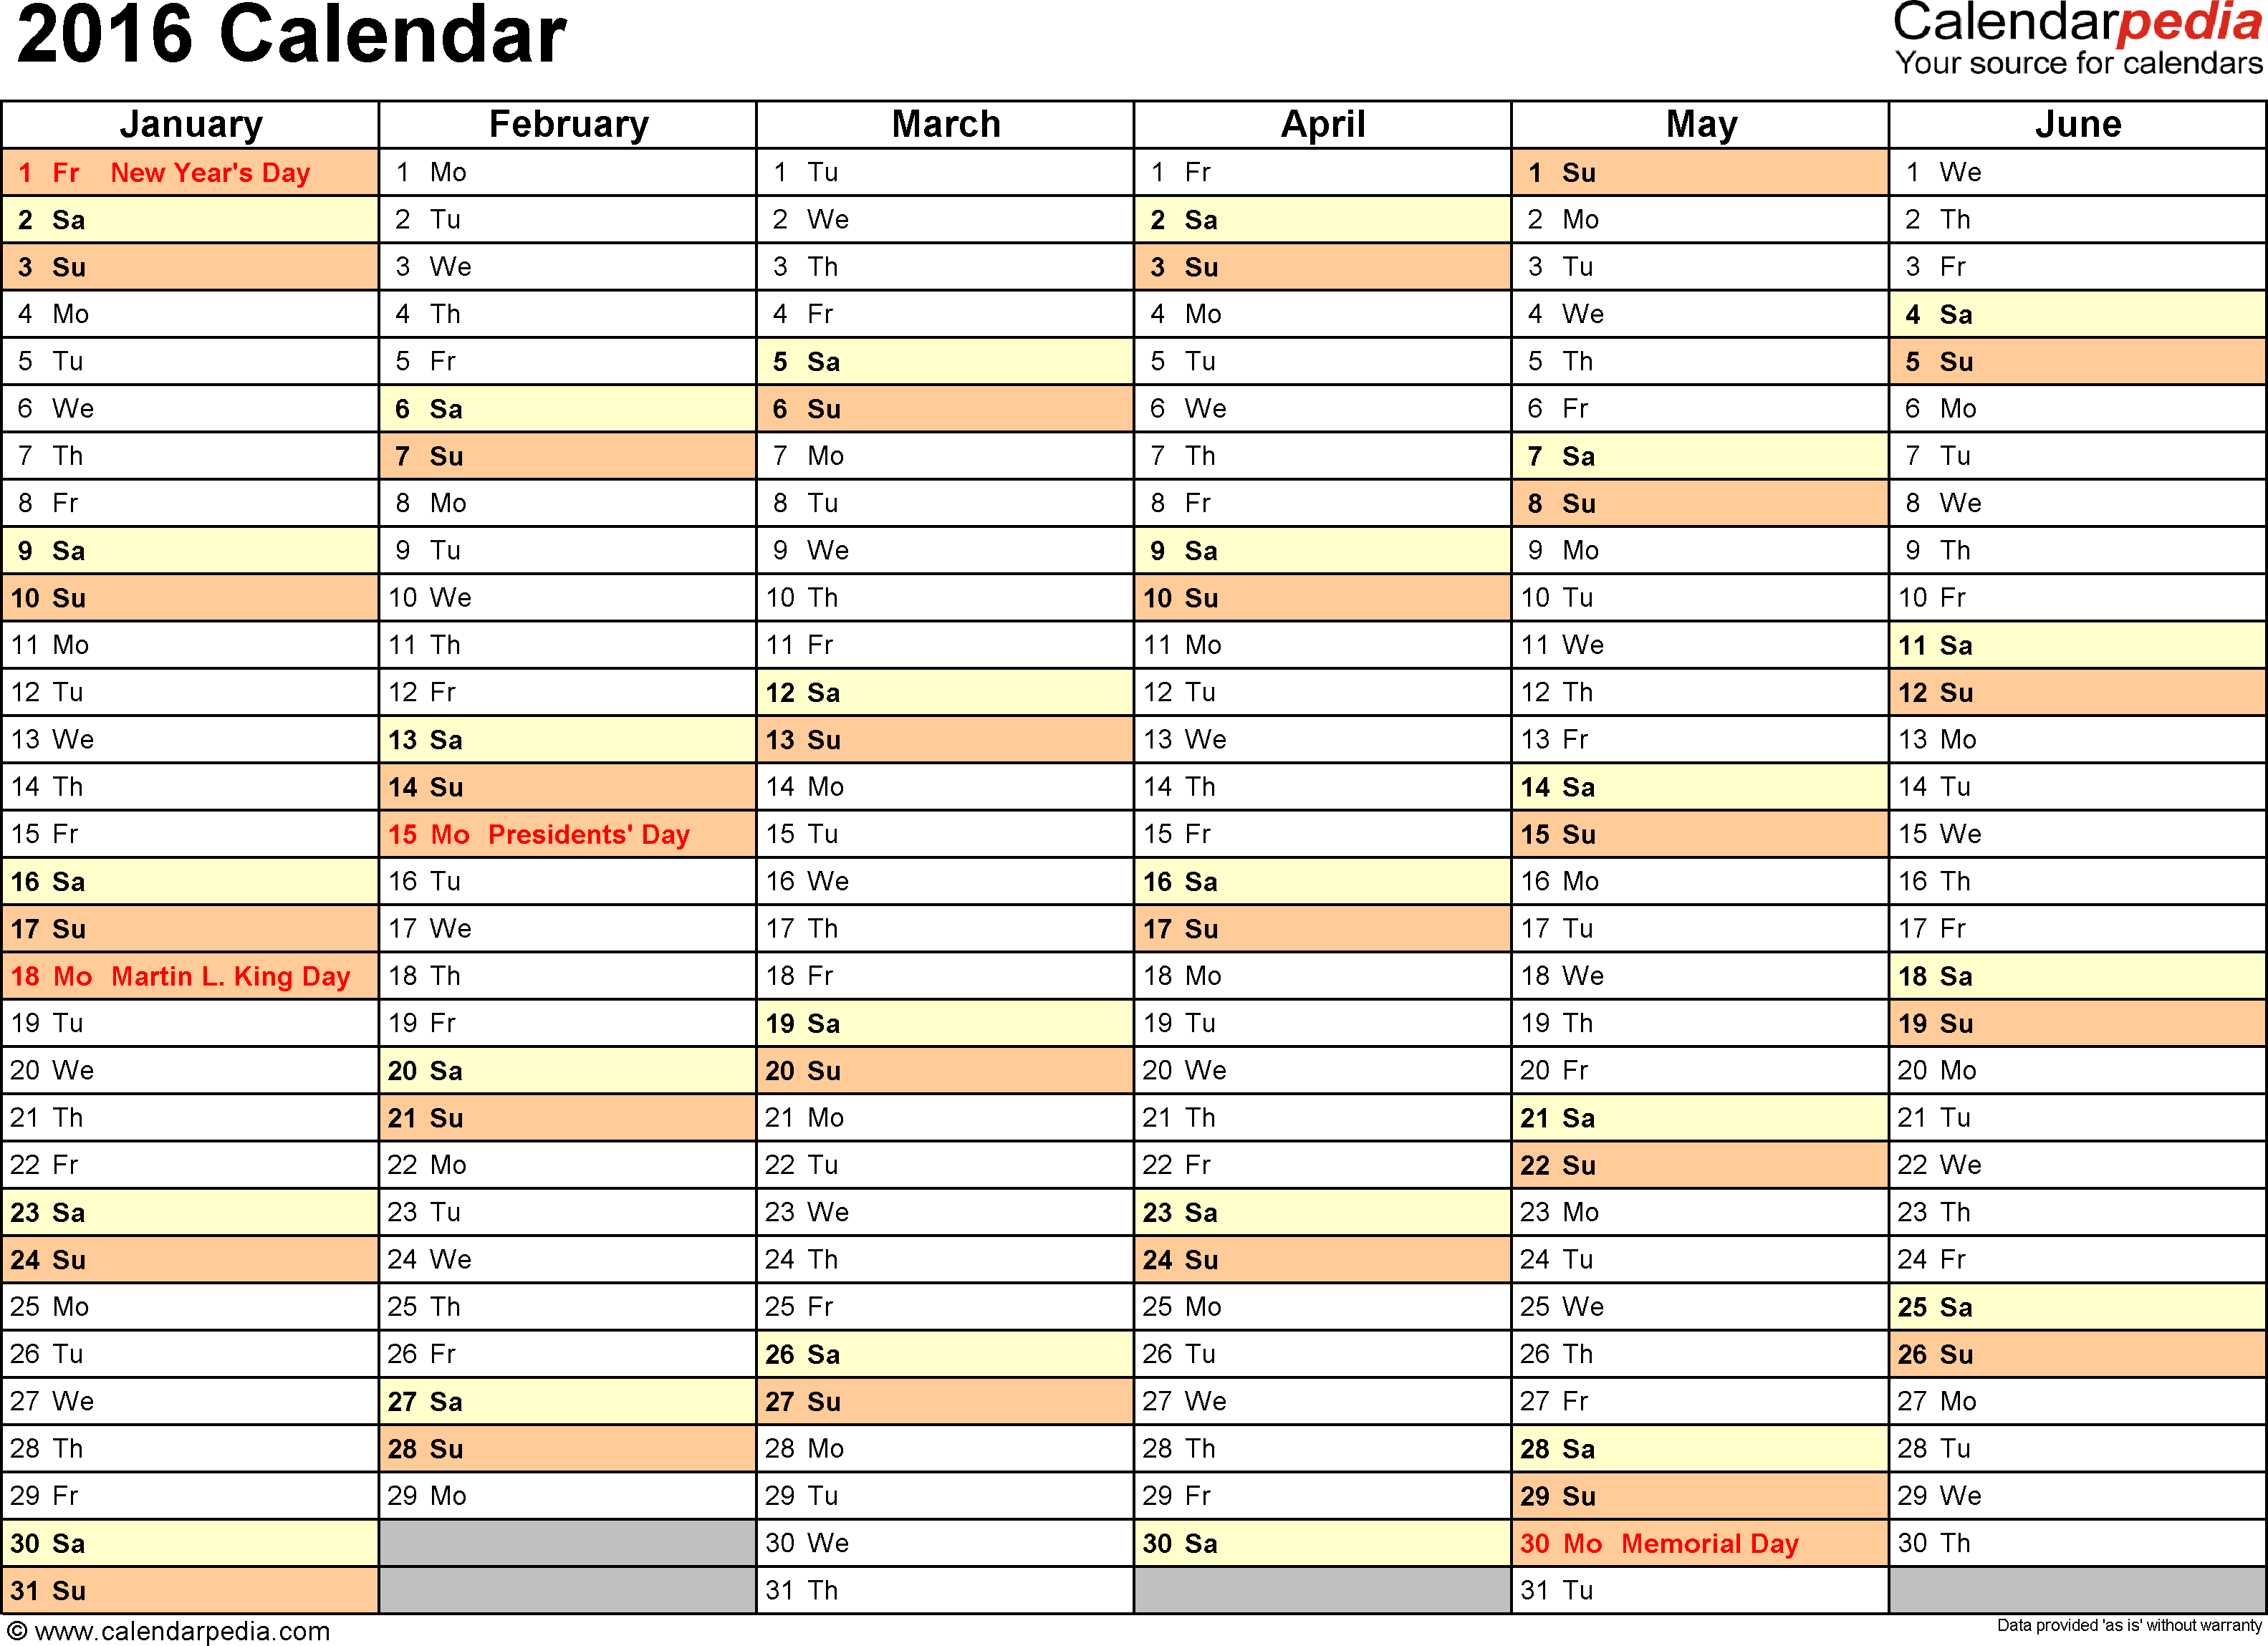 Ediblewildsus  Marvellous  Calendar  Download  Free Printable Excel Templates Xls With Hot Template   Calendar For Excel Months Horizontally  Pages Landscape Orientation With Agreeable How Do I Insert A Checkbox In Excel Also Pivot Excel In Addition Index Formula Excel And Switch Columns In Excel As Well As Share Excel Workbook Additionally Excel Terms From Calendarpediacom With Ediblewildsus  Hot  Calendar  Download  Free Printable Excel Templates Xls With Agreeable Template   Calendar For Excel Months Horizontally  Pages Landscape Orientation And Marvellous How Do I Insert A Checkbox In Excel Also Pivot Excel In Addition Index Formula Excel From Calendarpediacom